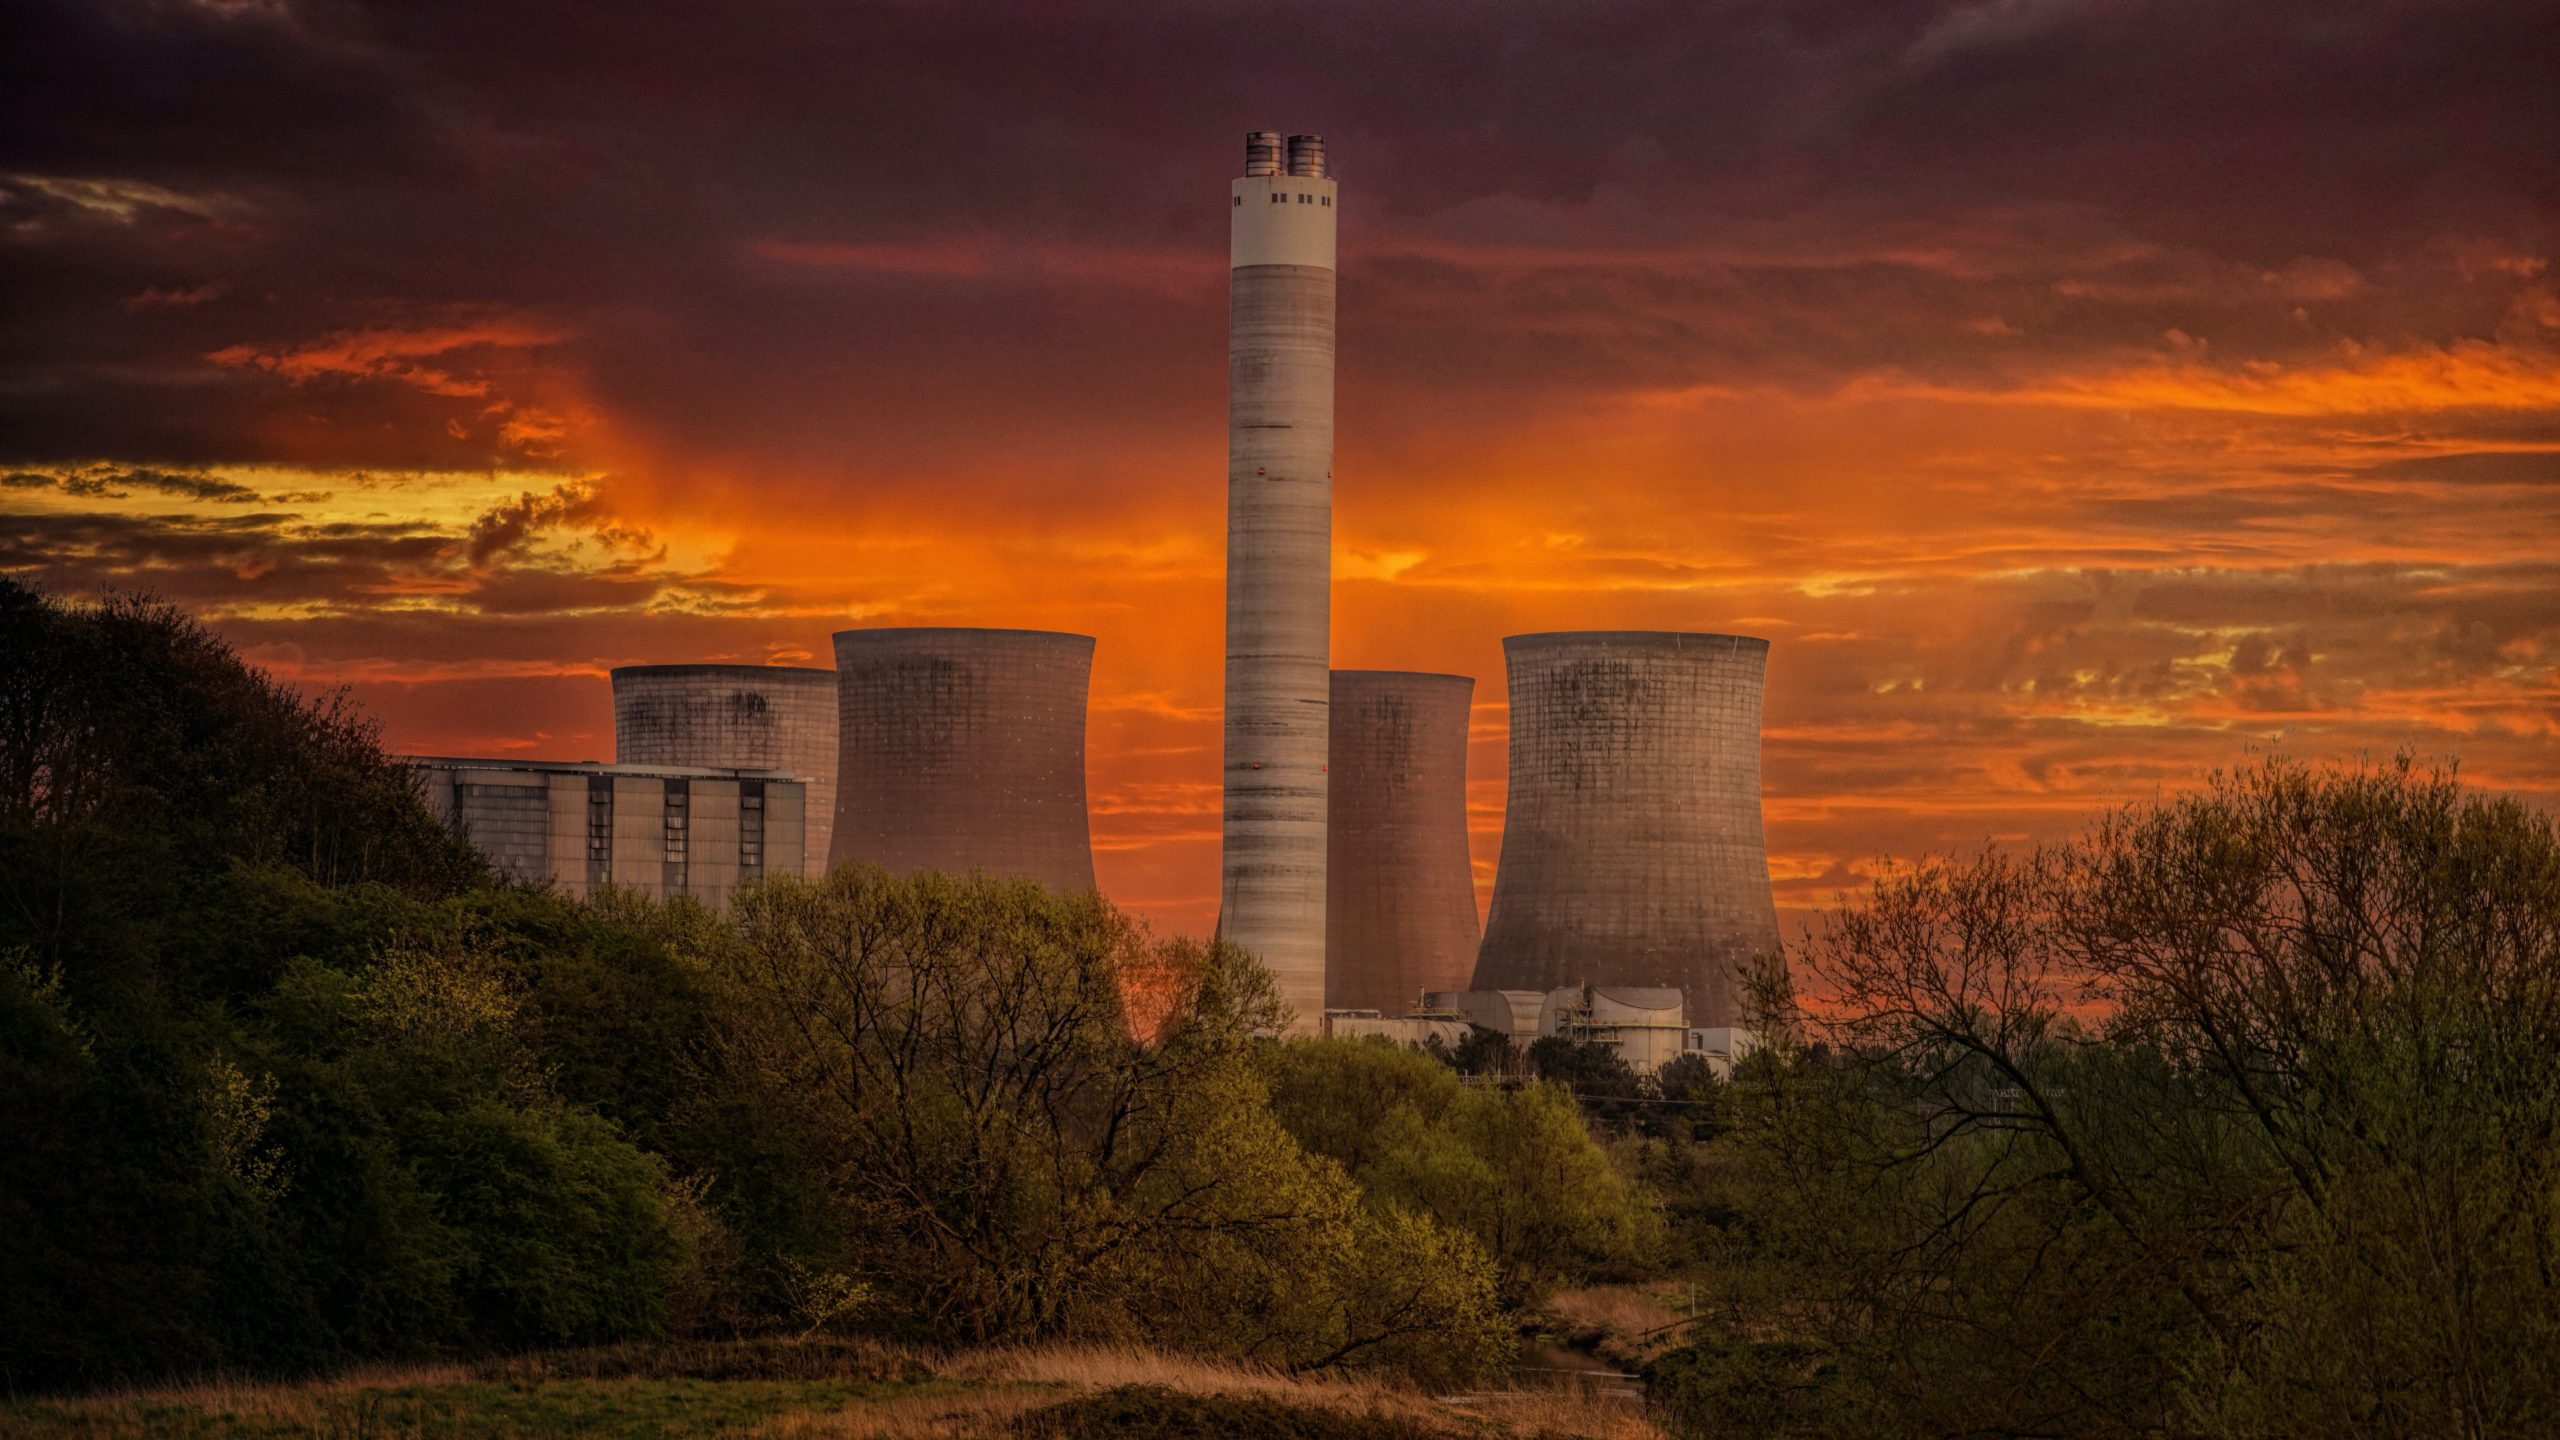 Nuclear cooling towers at sunset